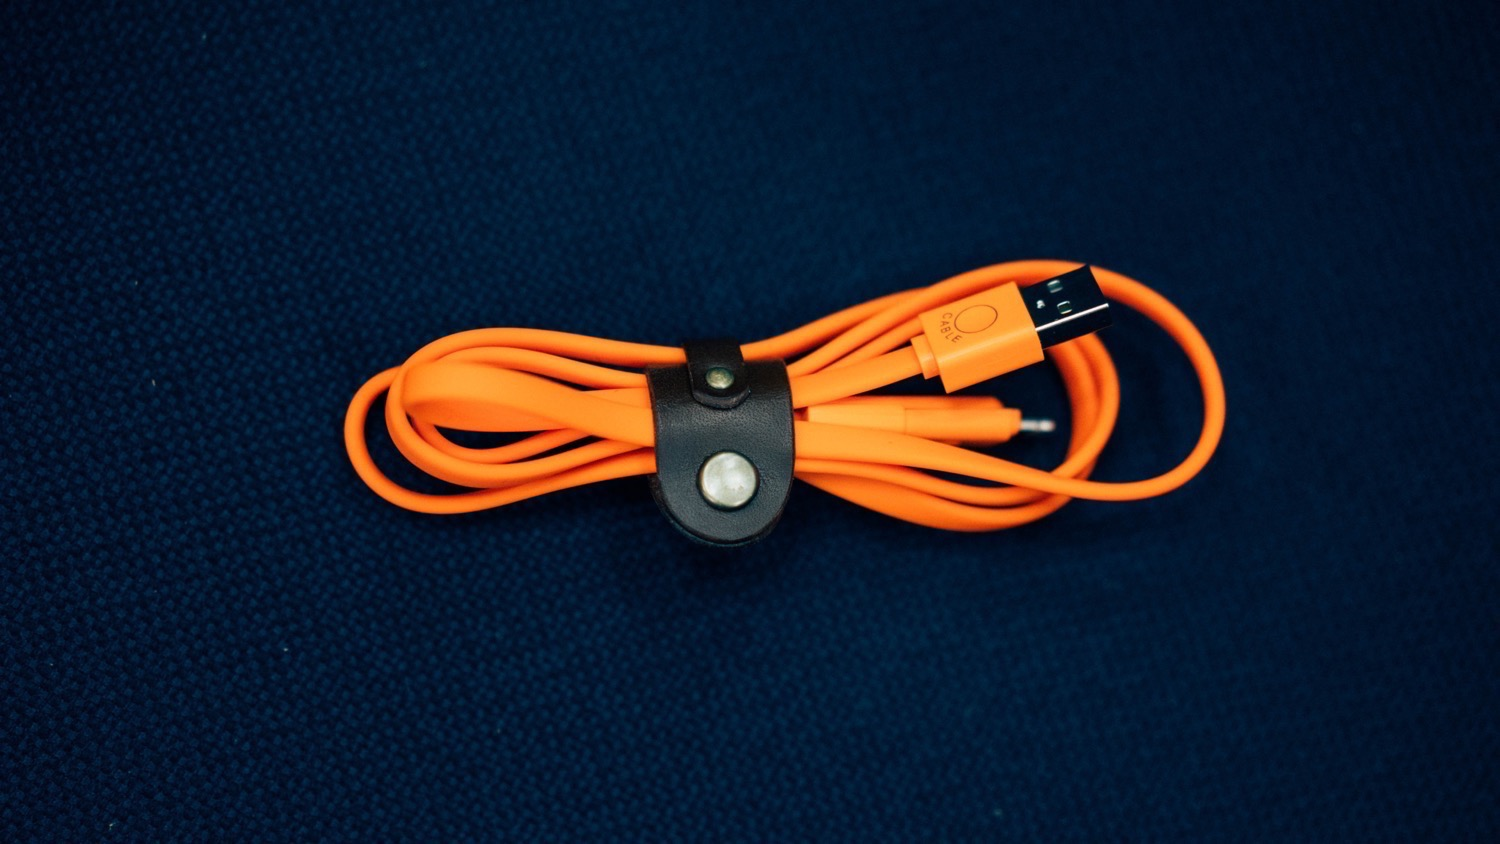 Woocon lightning microusb cable 17